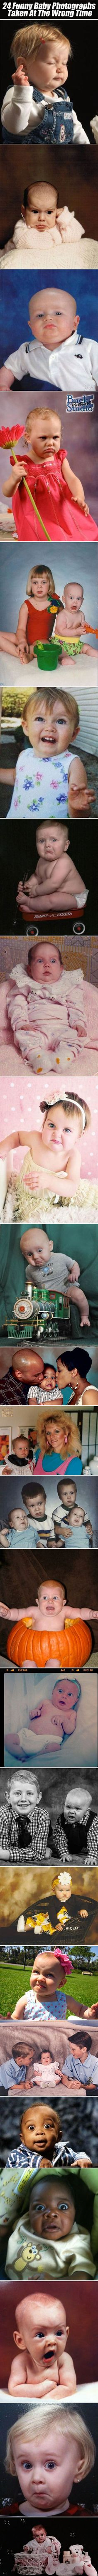 24 Funny Baby Photographs Taken At The Wrong Time funny photography baby lol humor funny pictures photographs funny photos funny images hilarious pictures